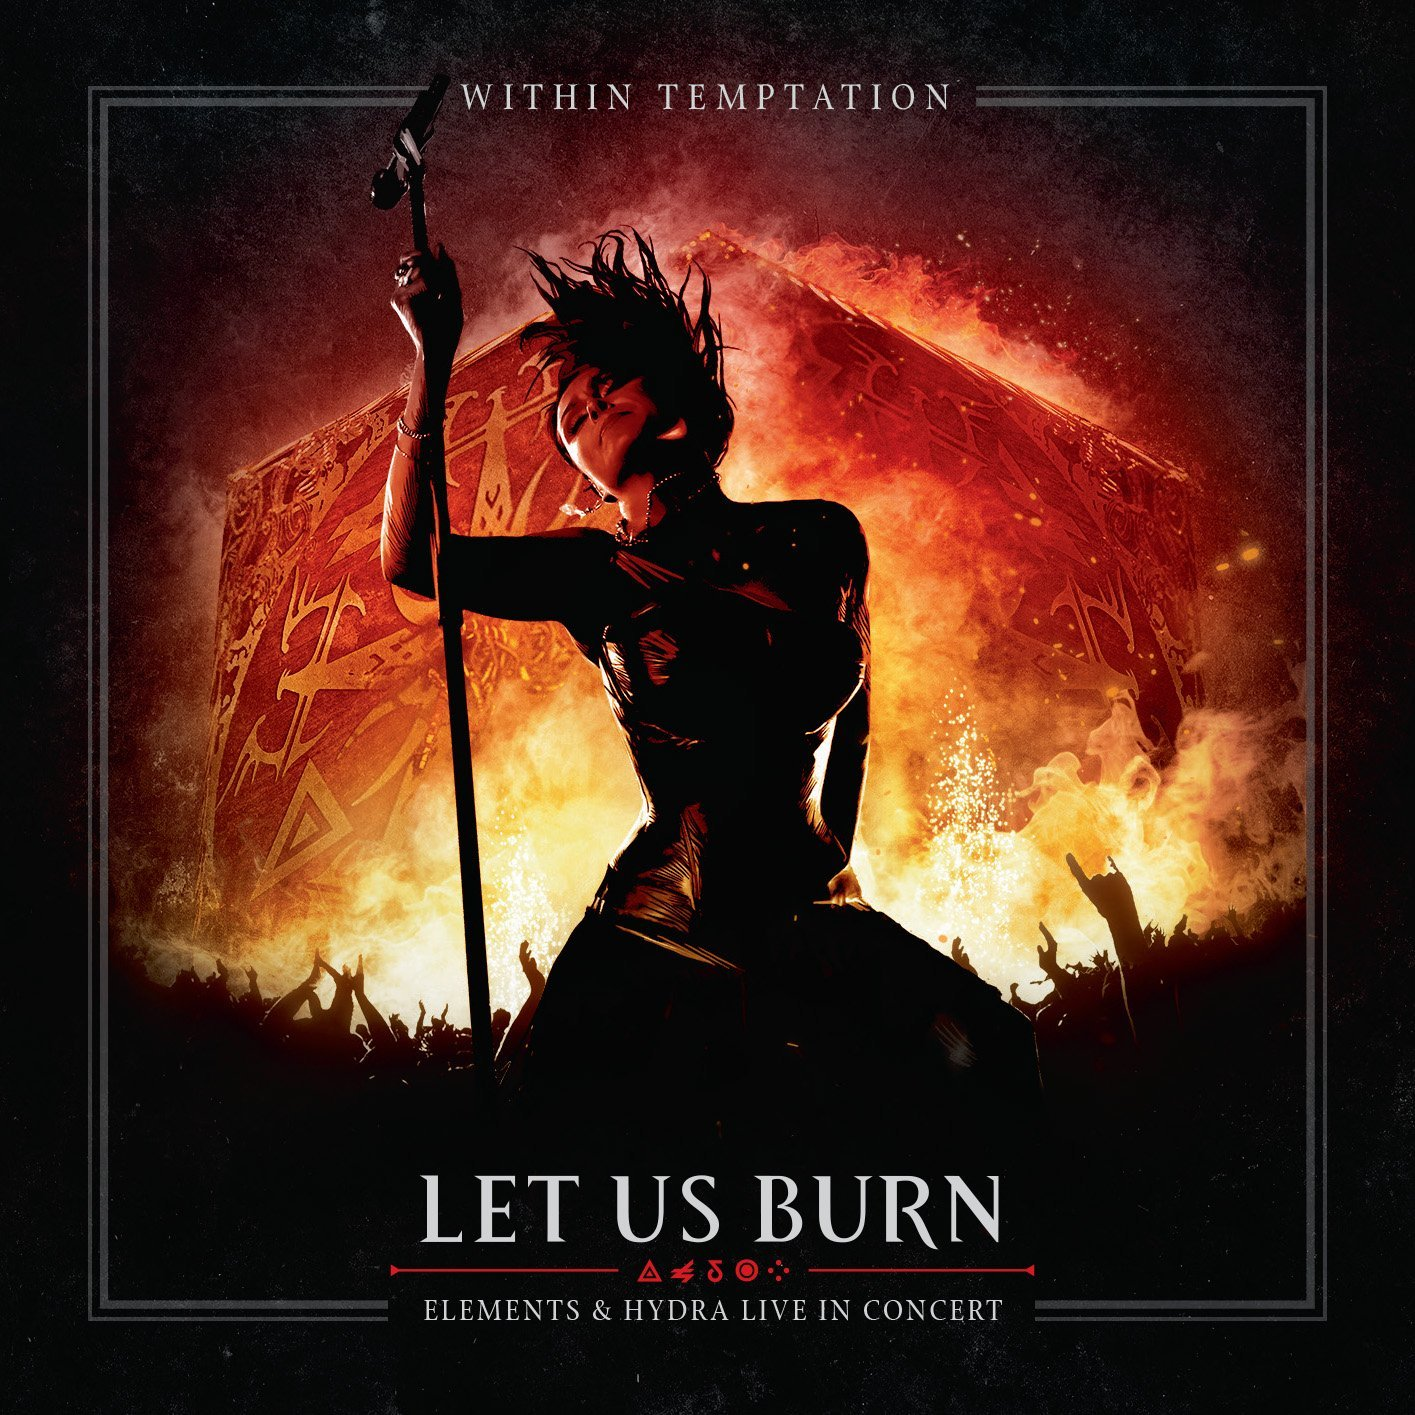 Within Temptation Let Us Burn Hydra and Elements Live In Concert CD DVD